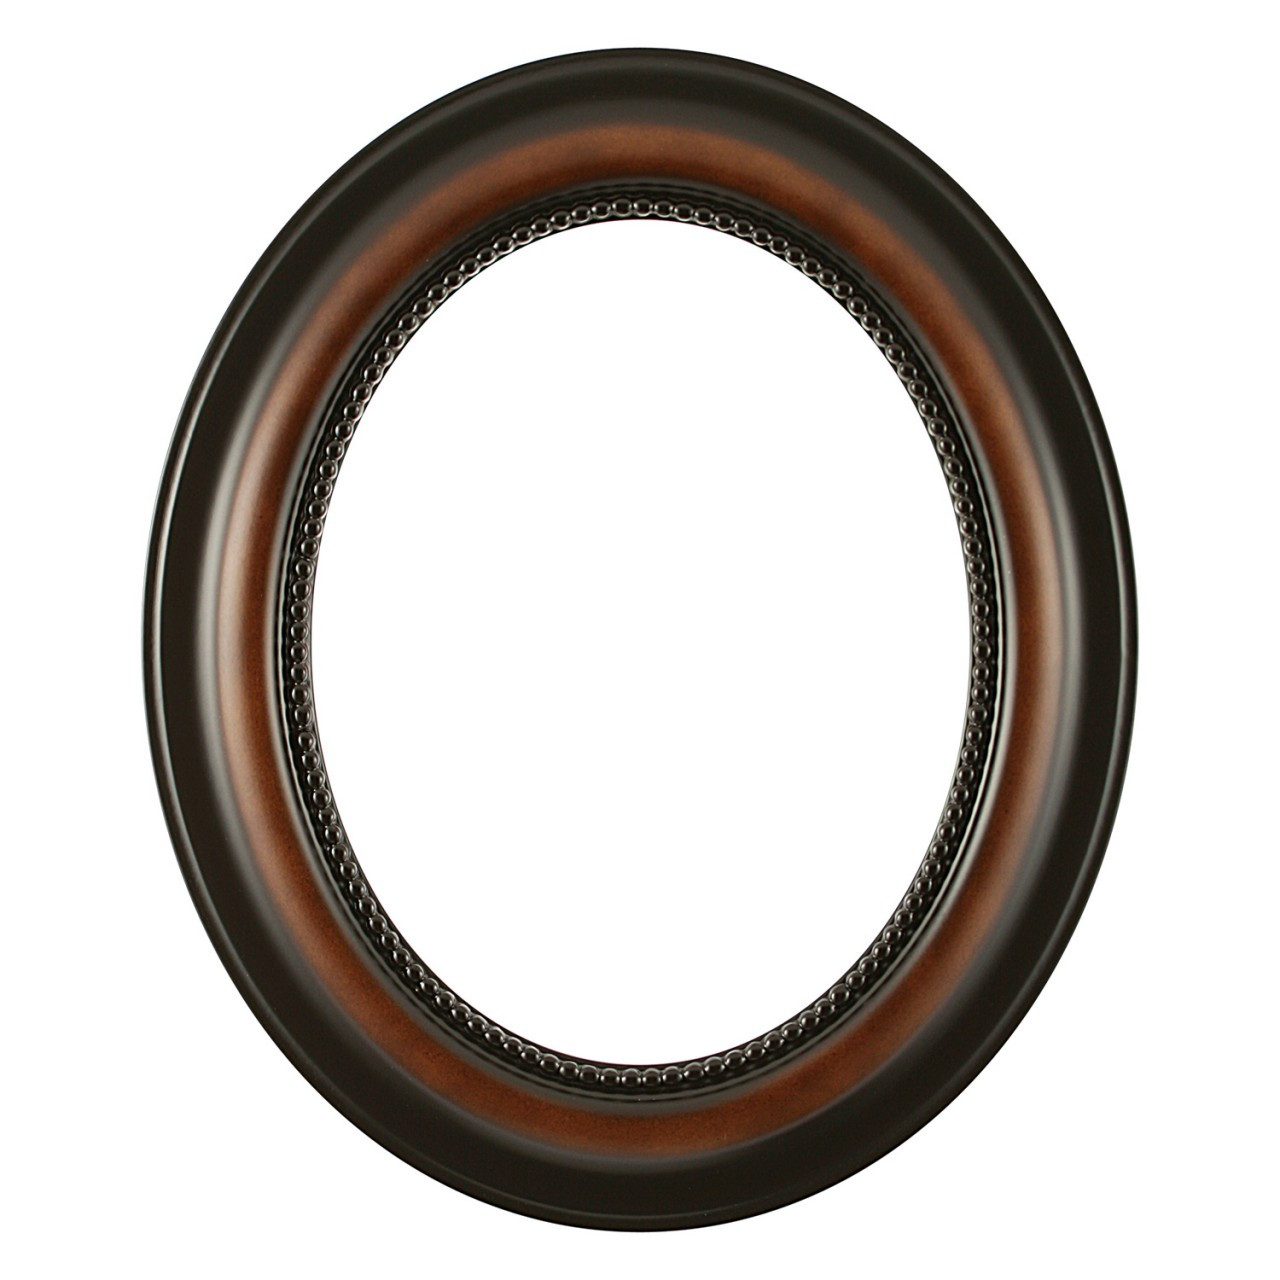 Oval Frame In Walnut Finish Vintage Wooden Picture